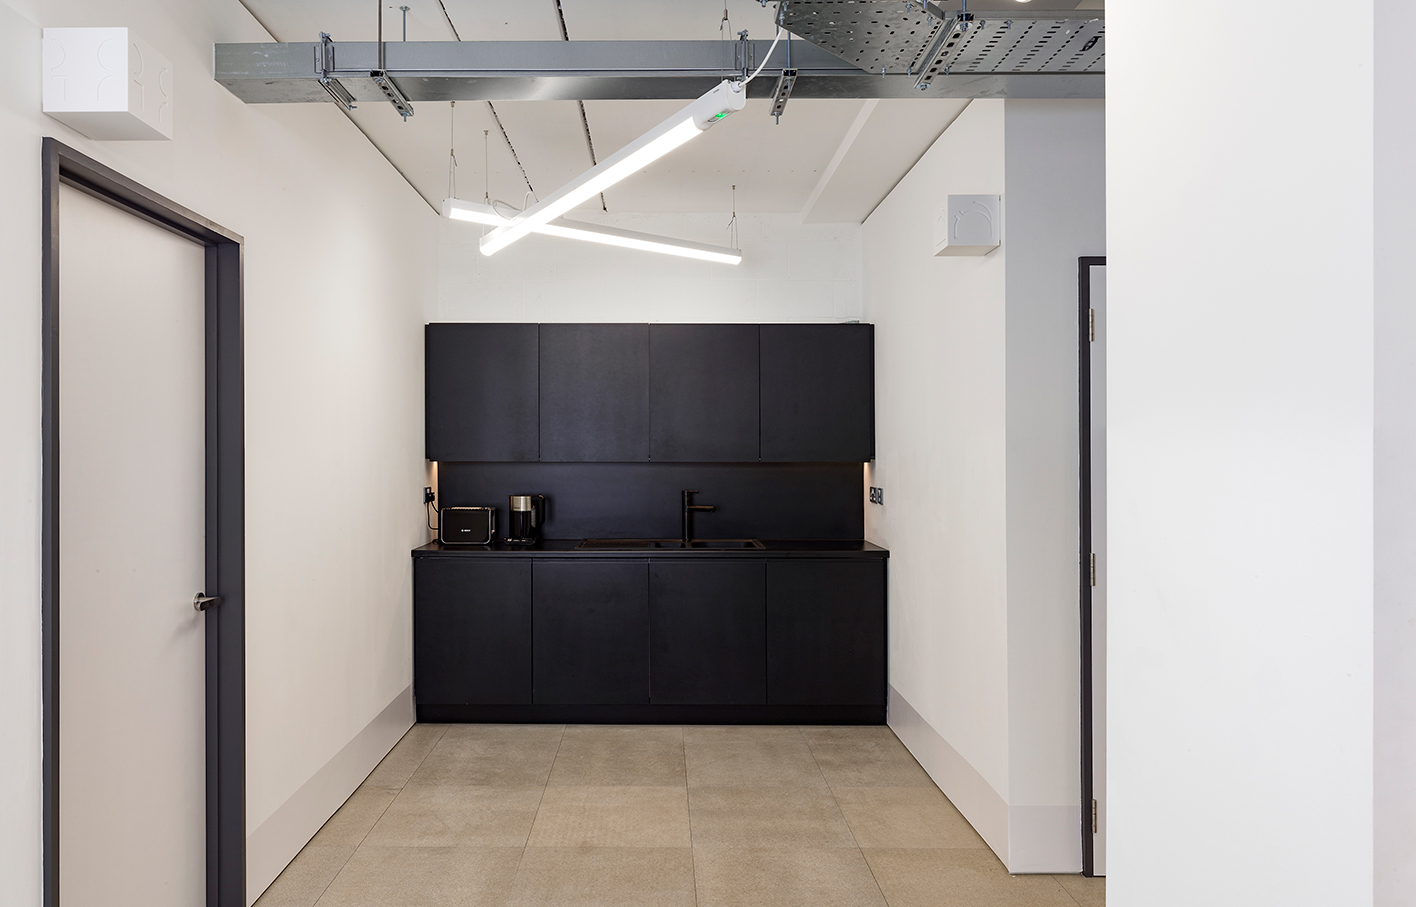 Aldworth James & Bond | Hackney Workspace teapoint designed by AJ&B Studio